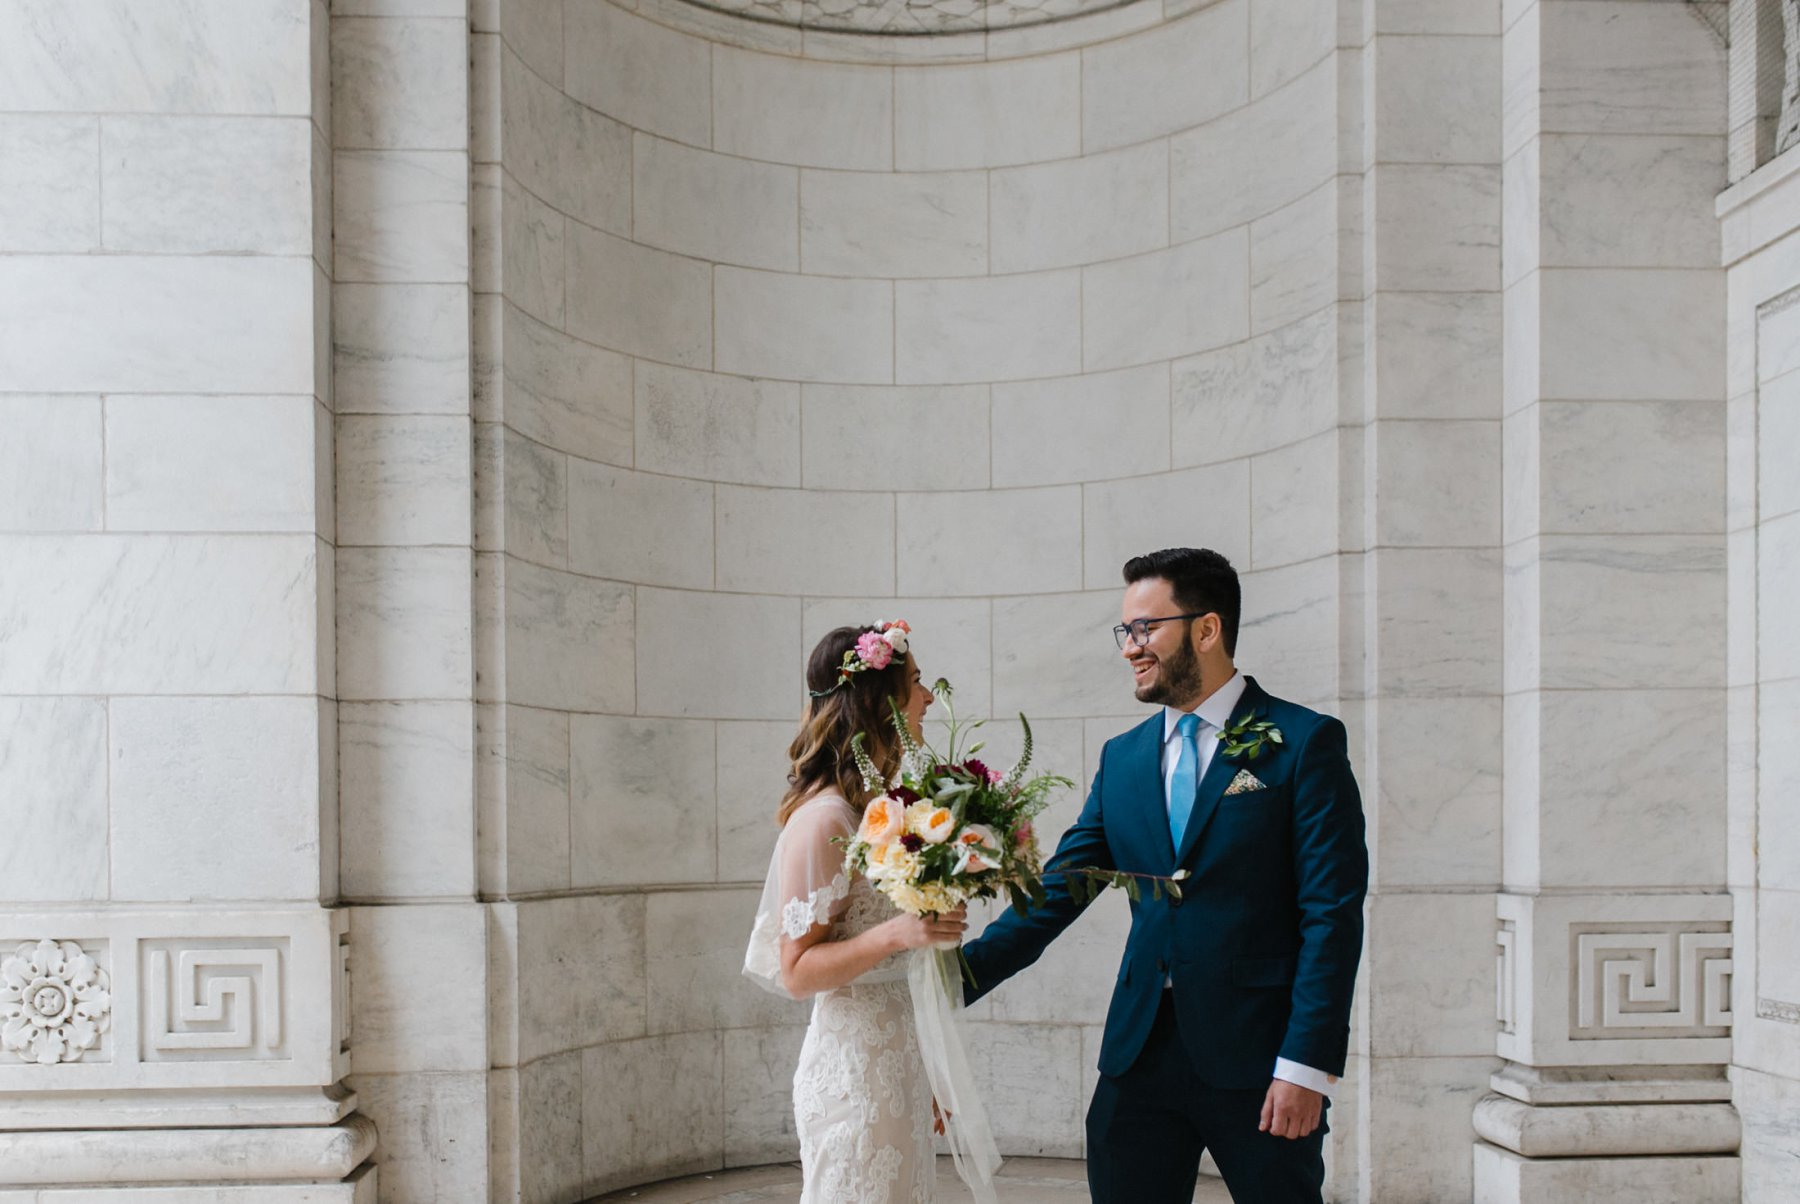 bride & groom first look wedding at New York Public Library Bryant Park